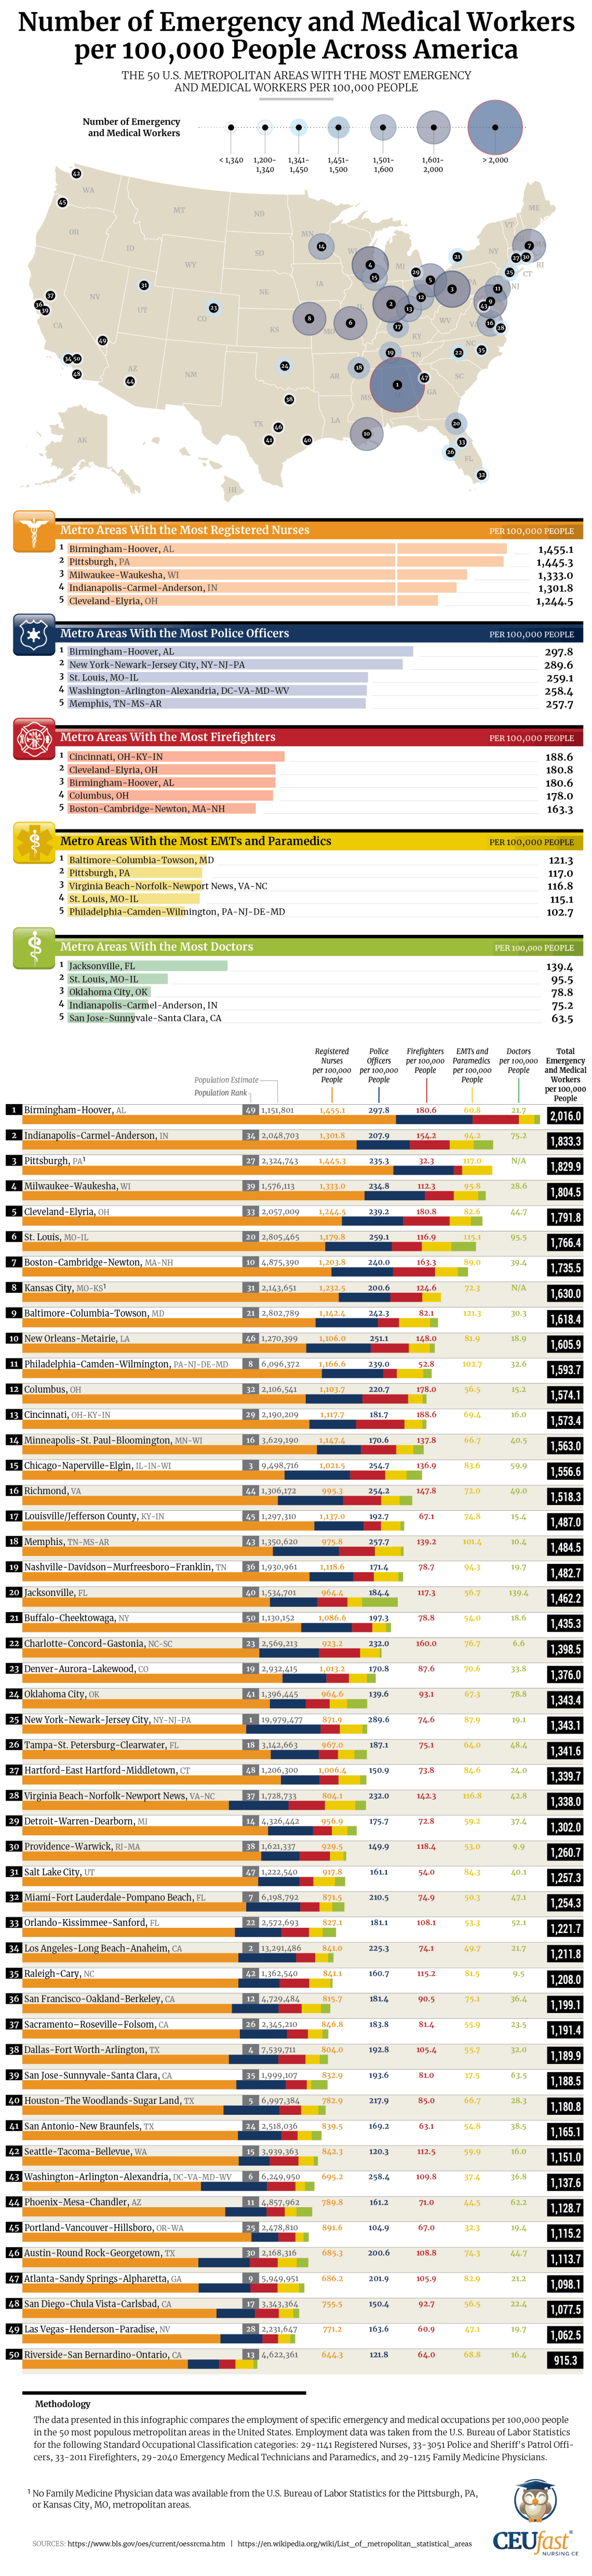 The Cities With the Most Emergency and Medical Workers